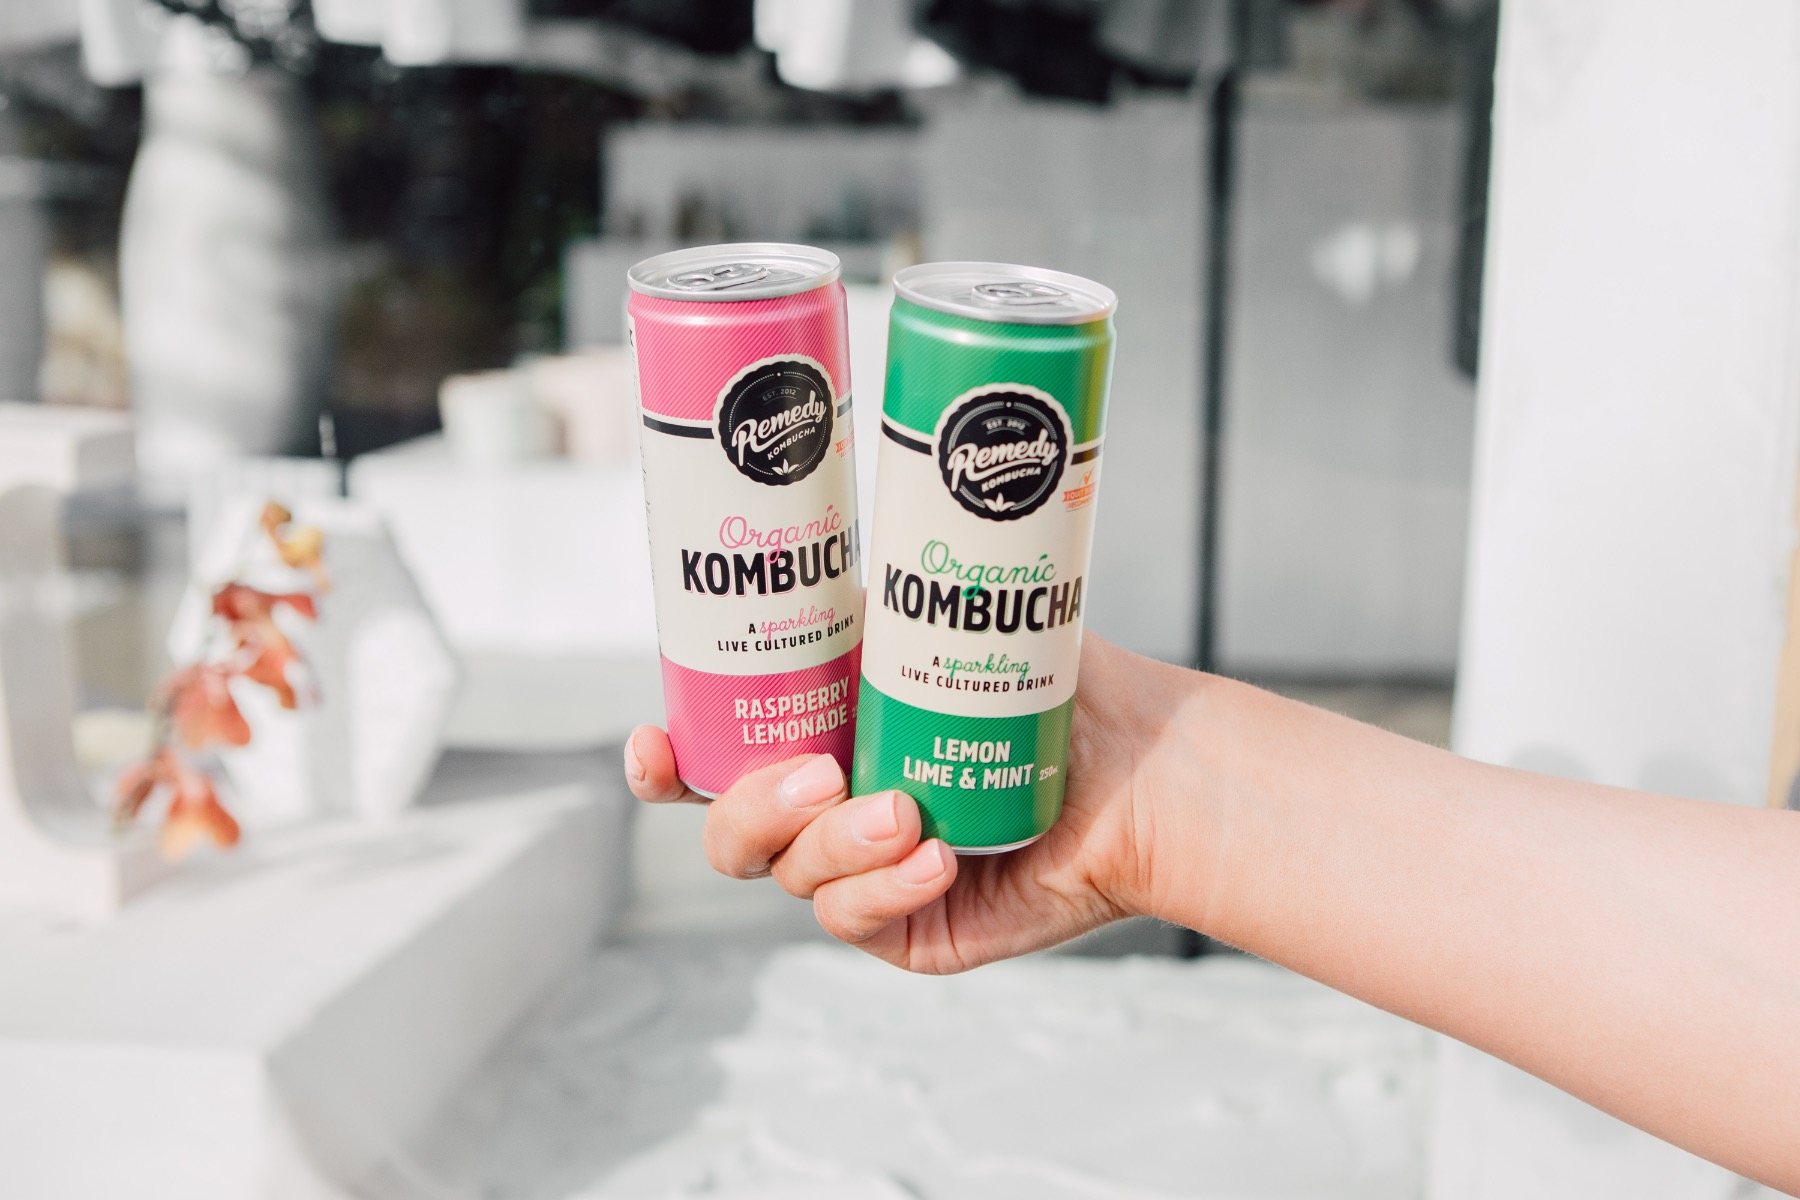 Remedy Kombucha cans in Raspberry Lemonade and Lemon Lime and Mint flavours